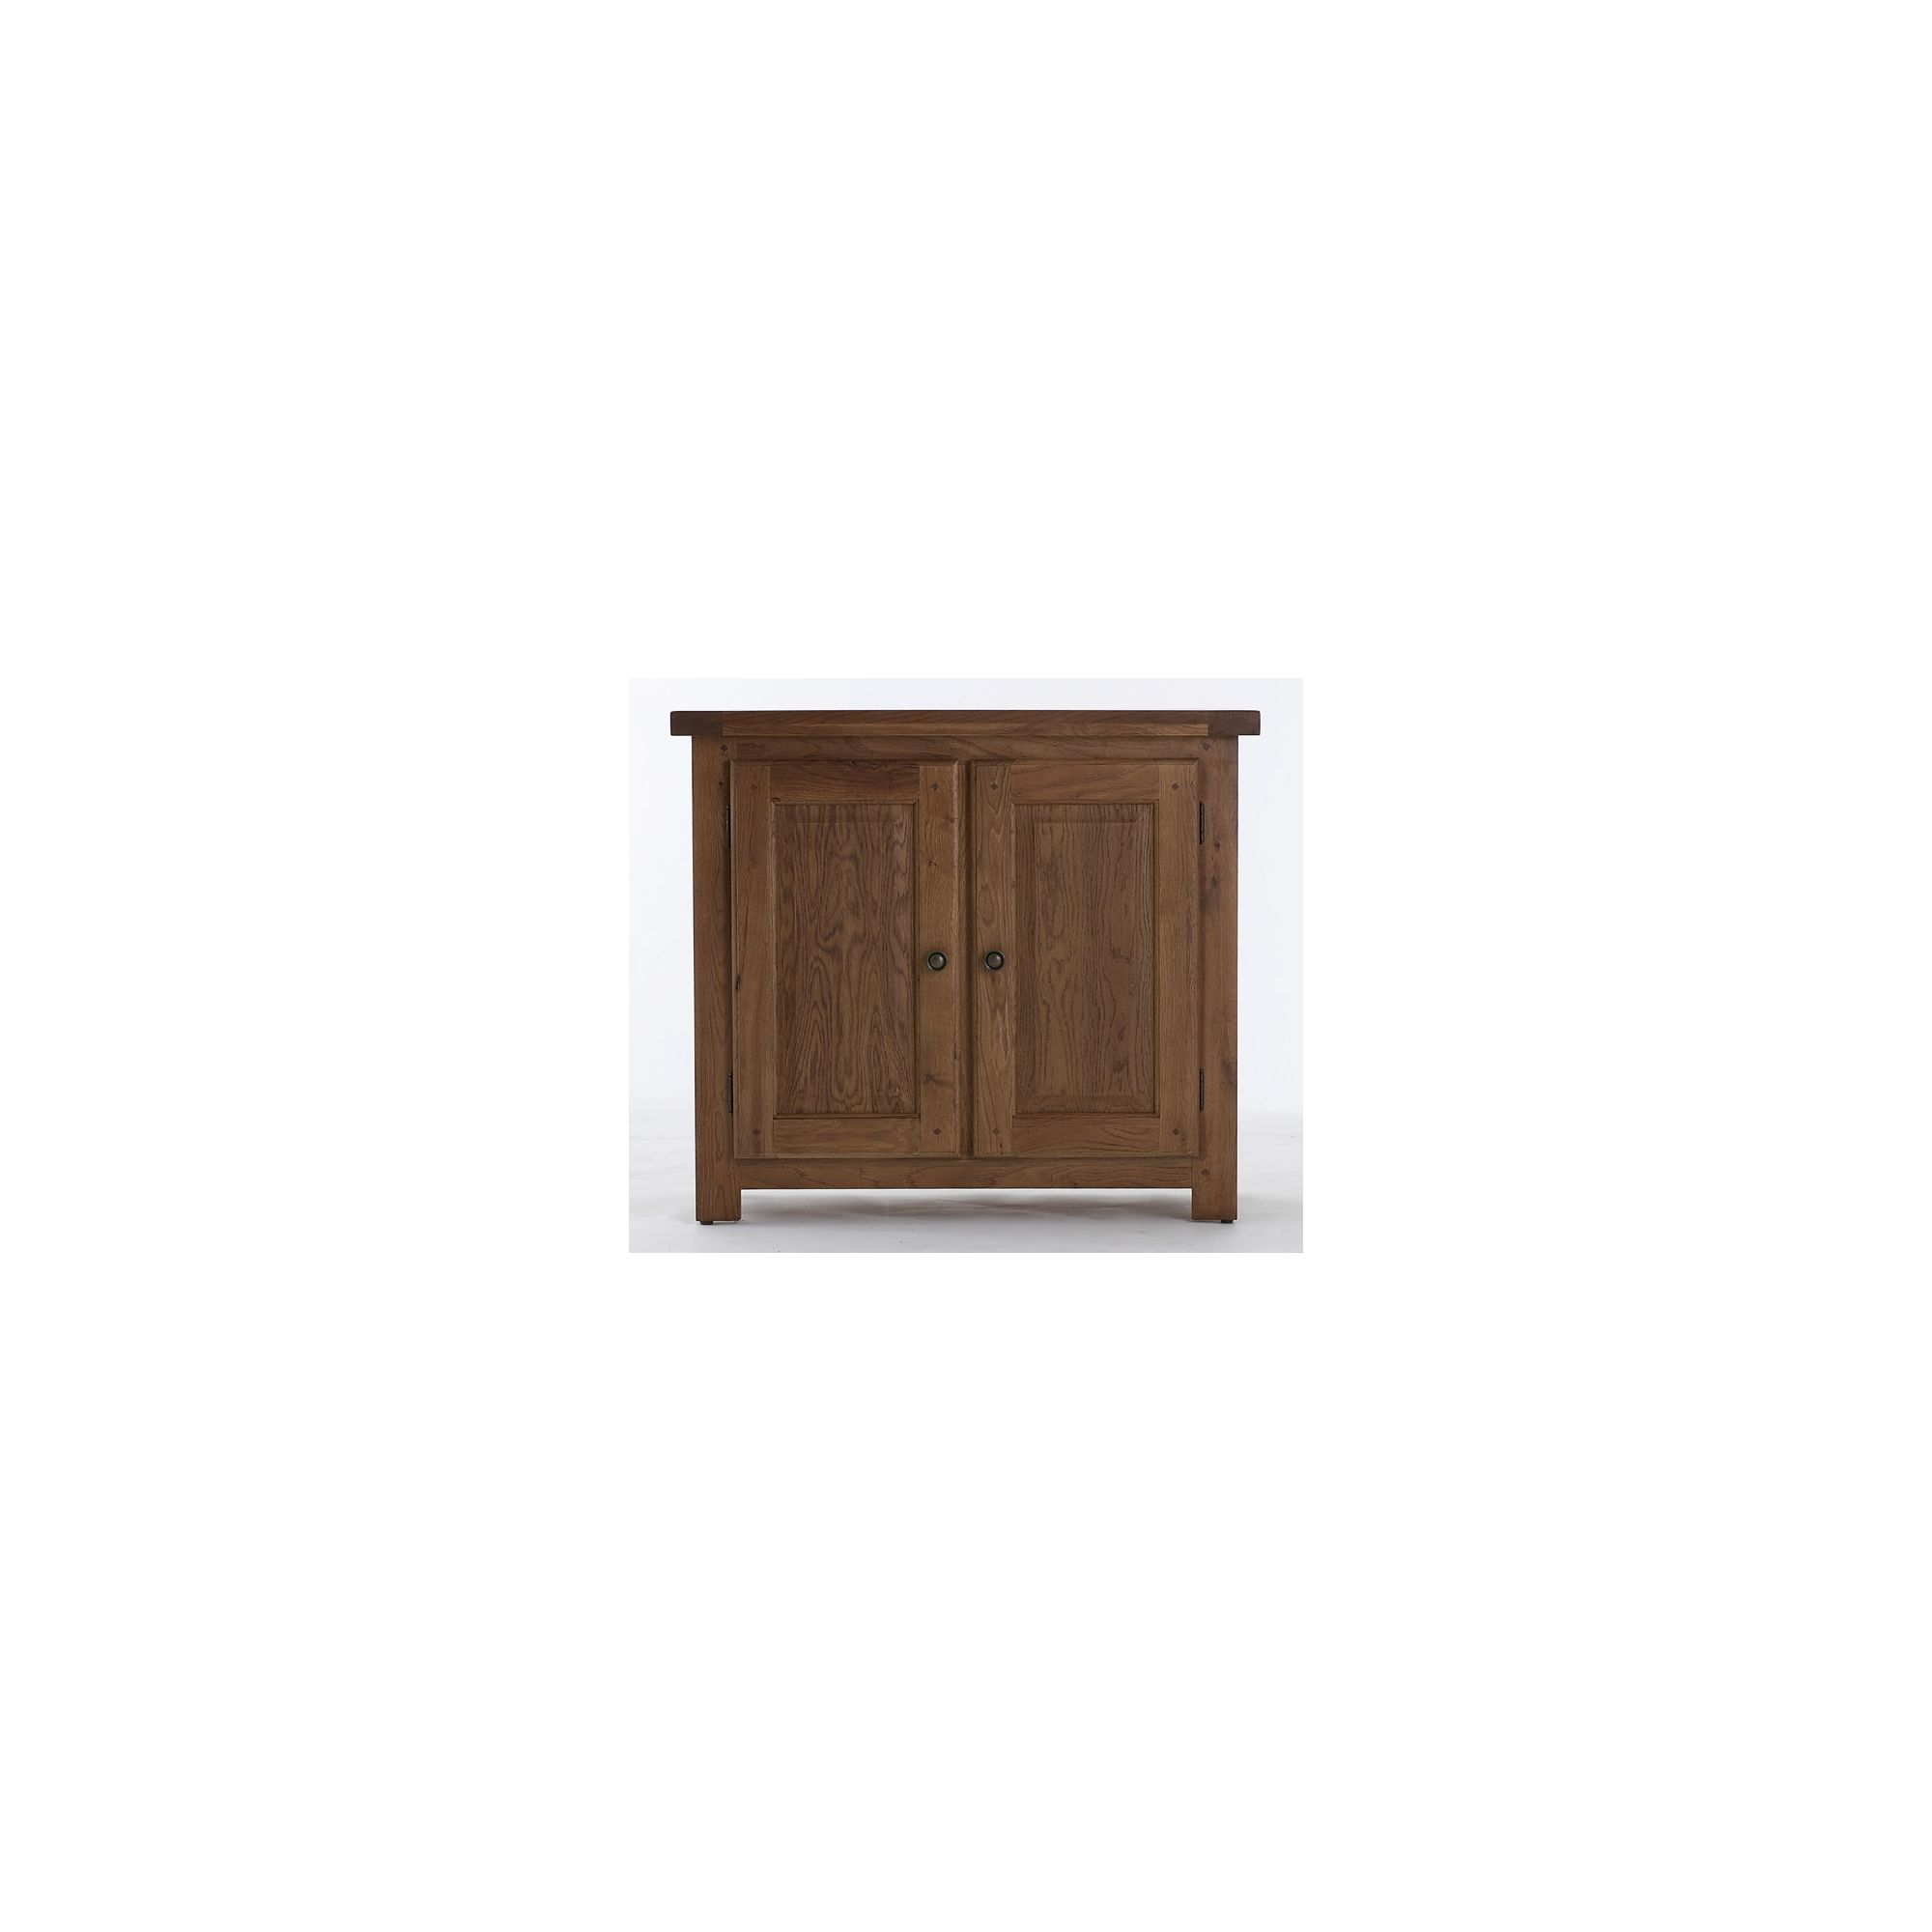 Thorndon Farmhouse 2 Door Cupboard in Old Oak at Tesco Direct